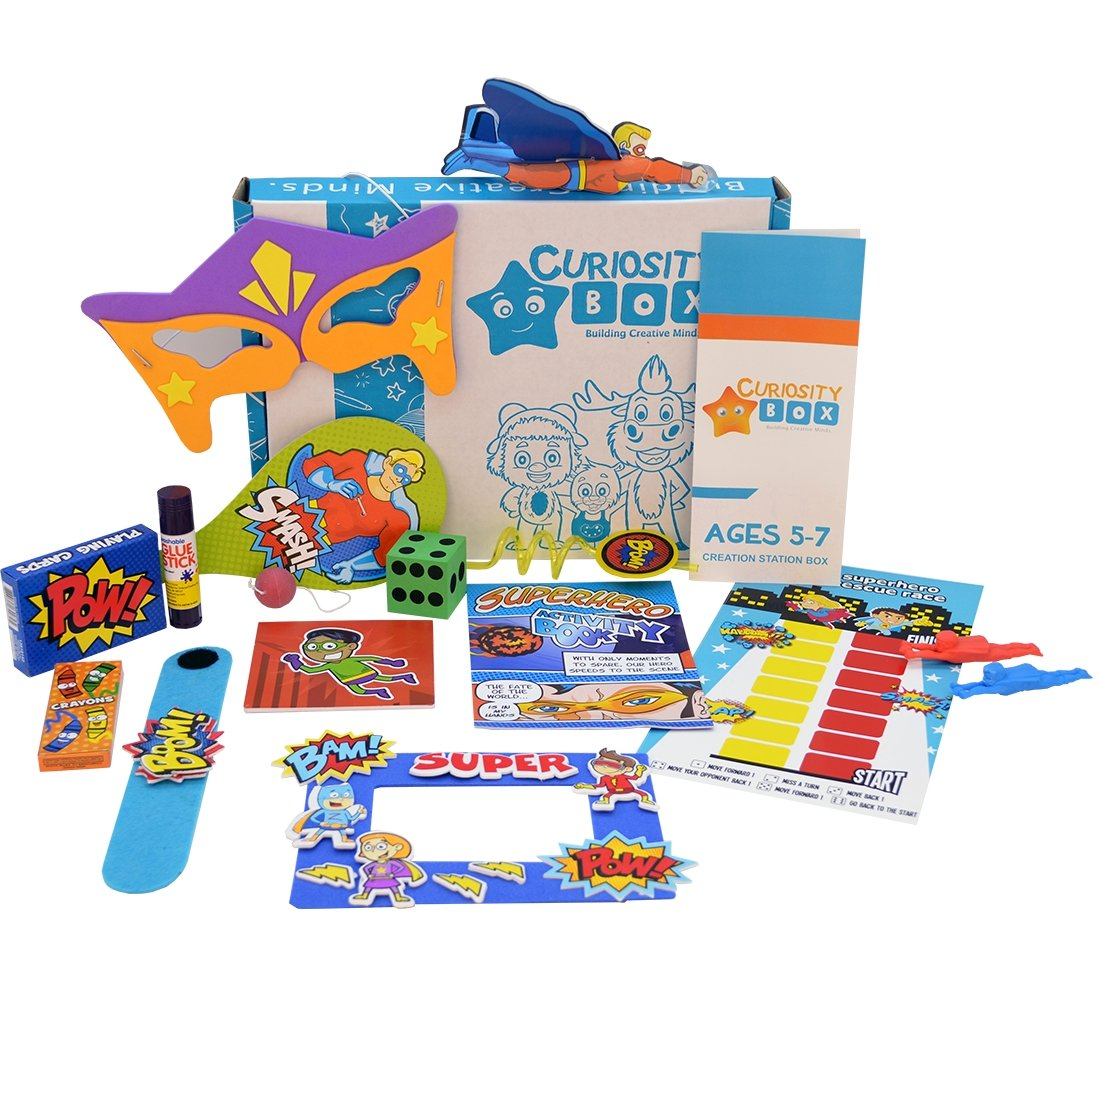 Superhero Powers Craft Box for Ages 5-7- Curiosity-Box-Craft-and-Educational-Boxes-Kids-Monthly-Subscription-Box